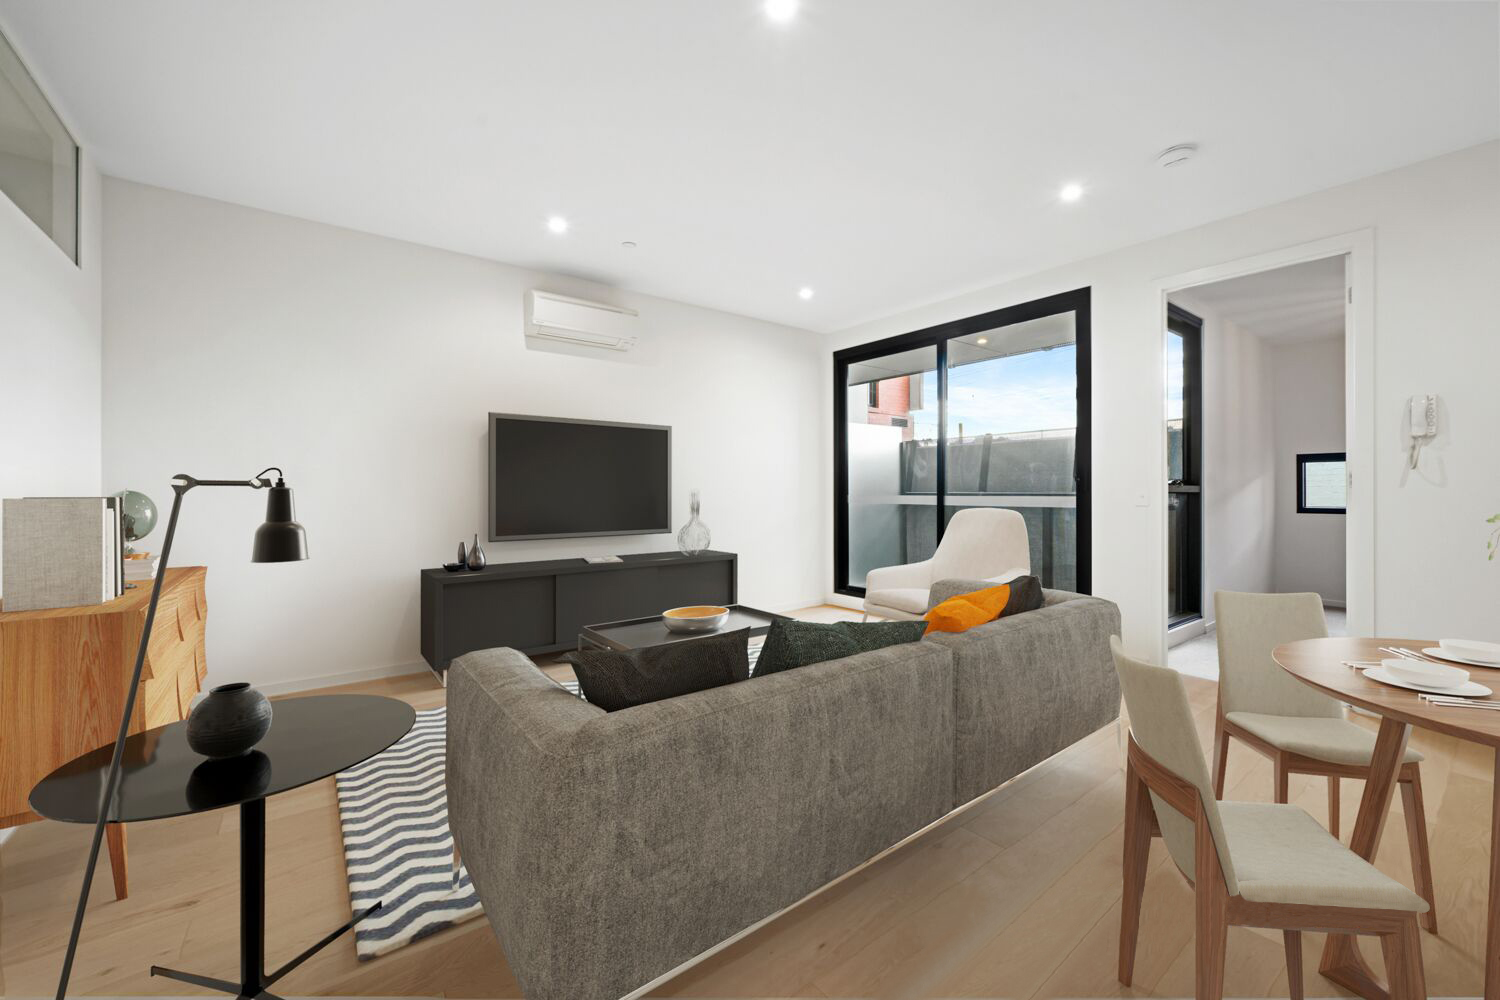 206-108-munster-terrace-north-melbourne-student-accommodation-Melbourne-Living-Area-Unilodgers